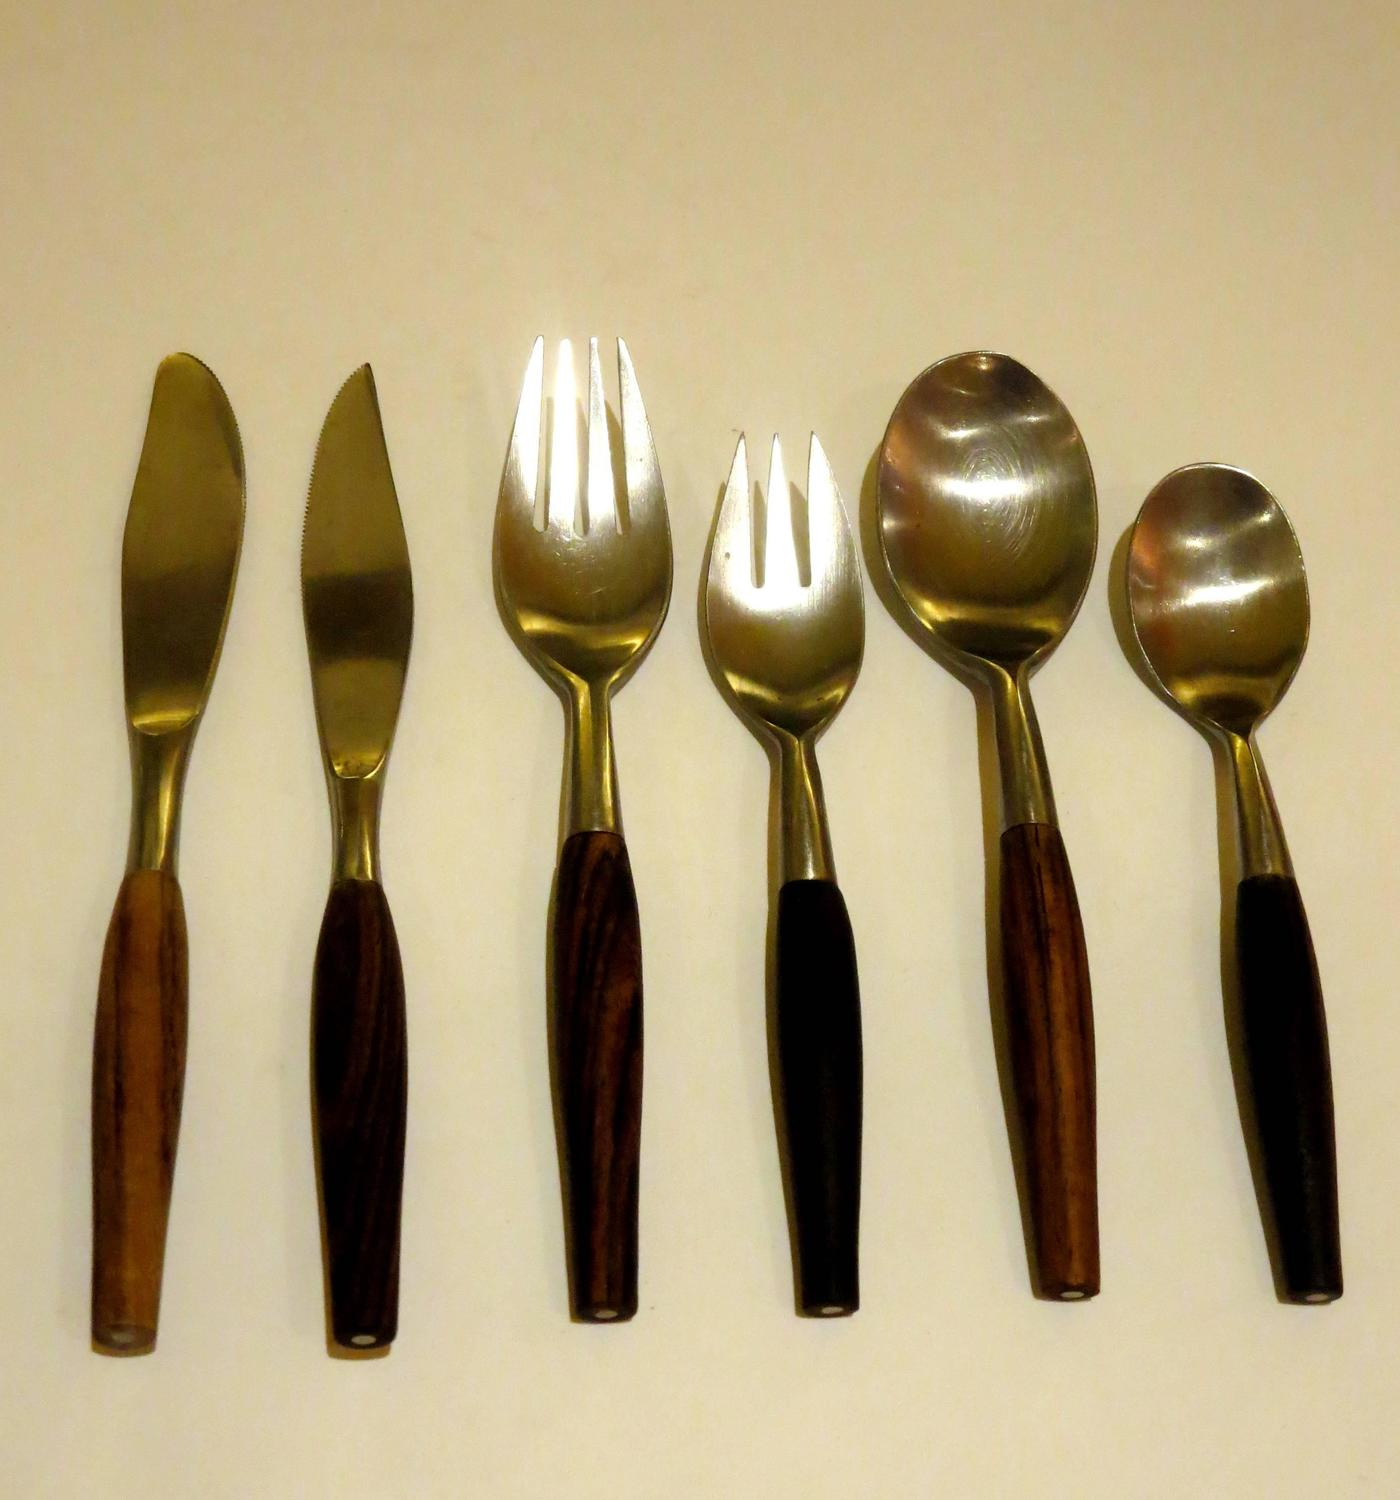 1950s danish modern stainless steel and rosewood flatware six piece place at 1stdibs - Contemporary stainless flatware ...